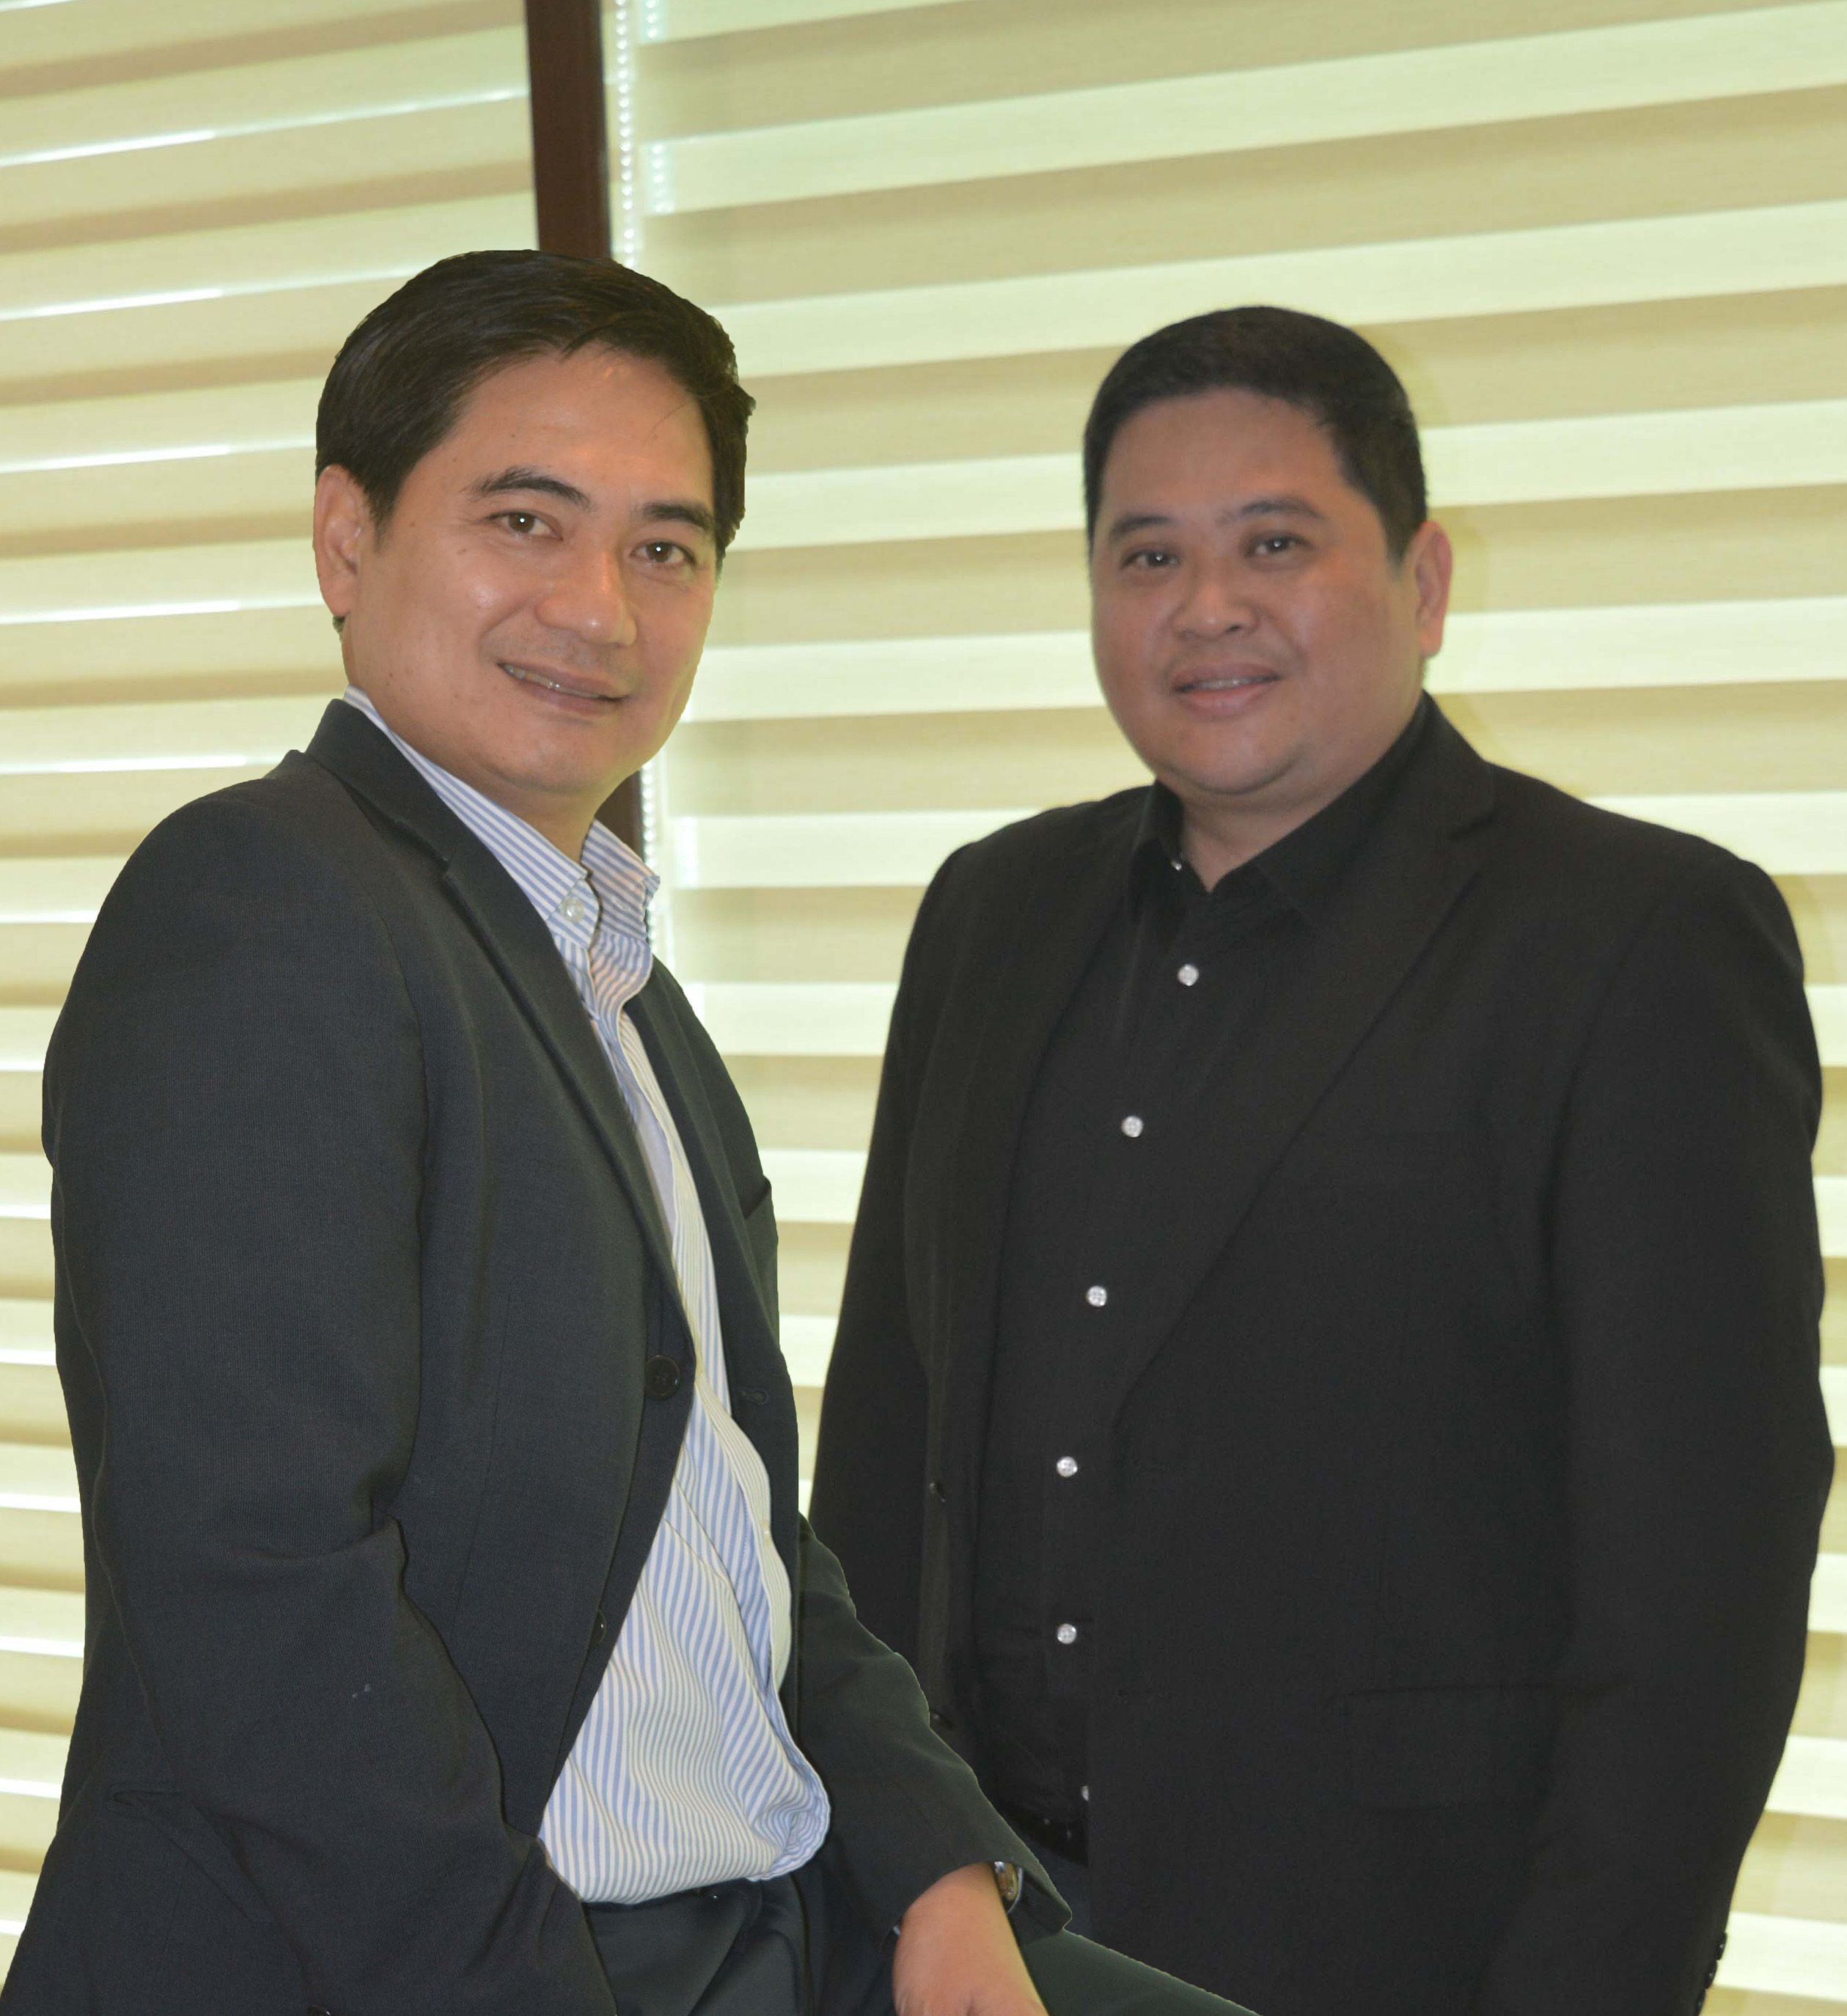 Armand Batalla and Erwyn Alcomendras